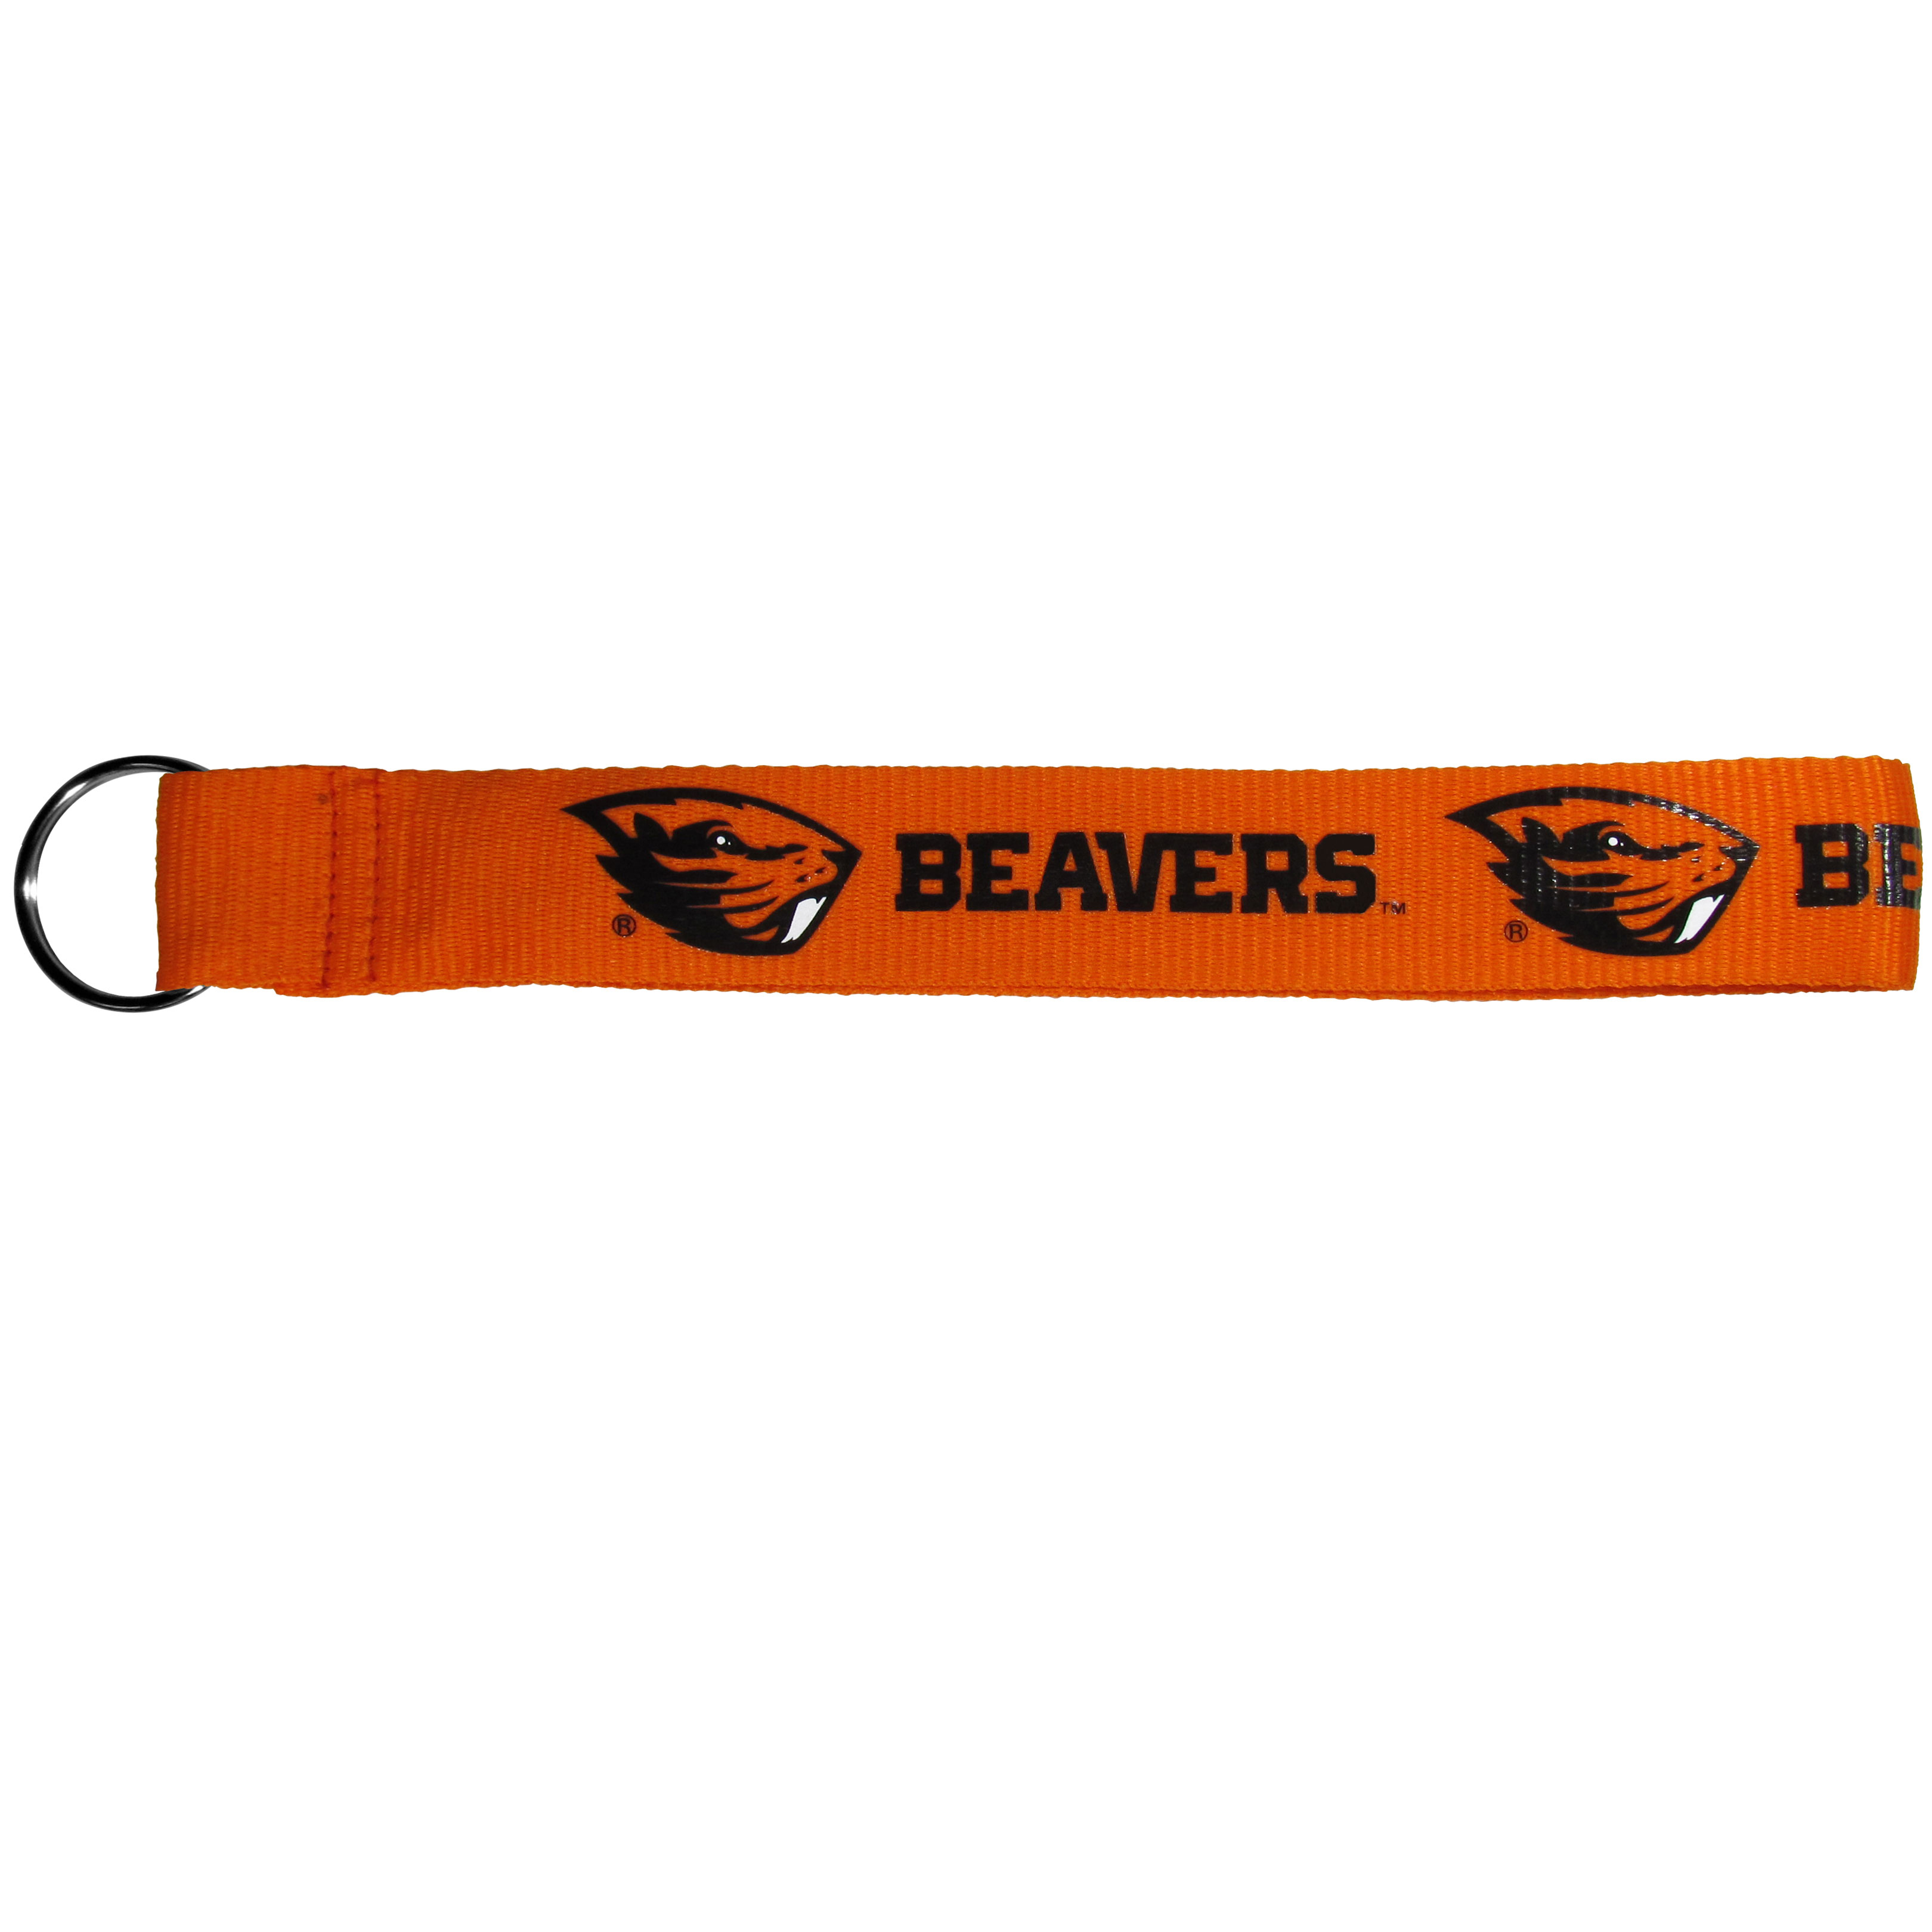 Oregon St. Beavers  Lanyard Key Chain - Our wrist strap lanyard key chain is made of durable and comfortable woven material and is a not only a great key chain but an easy way to keep track of your keys. The bright Oregon St. Beavers graffics makes this key chain easy to find in gym bags, purses and in the dreaded couch cushions.